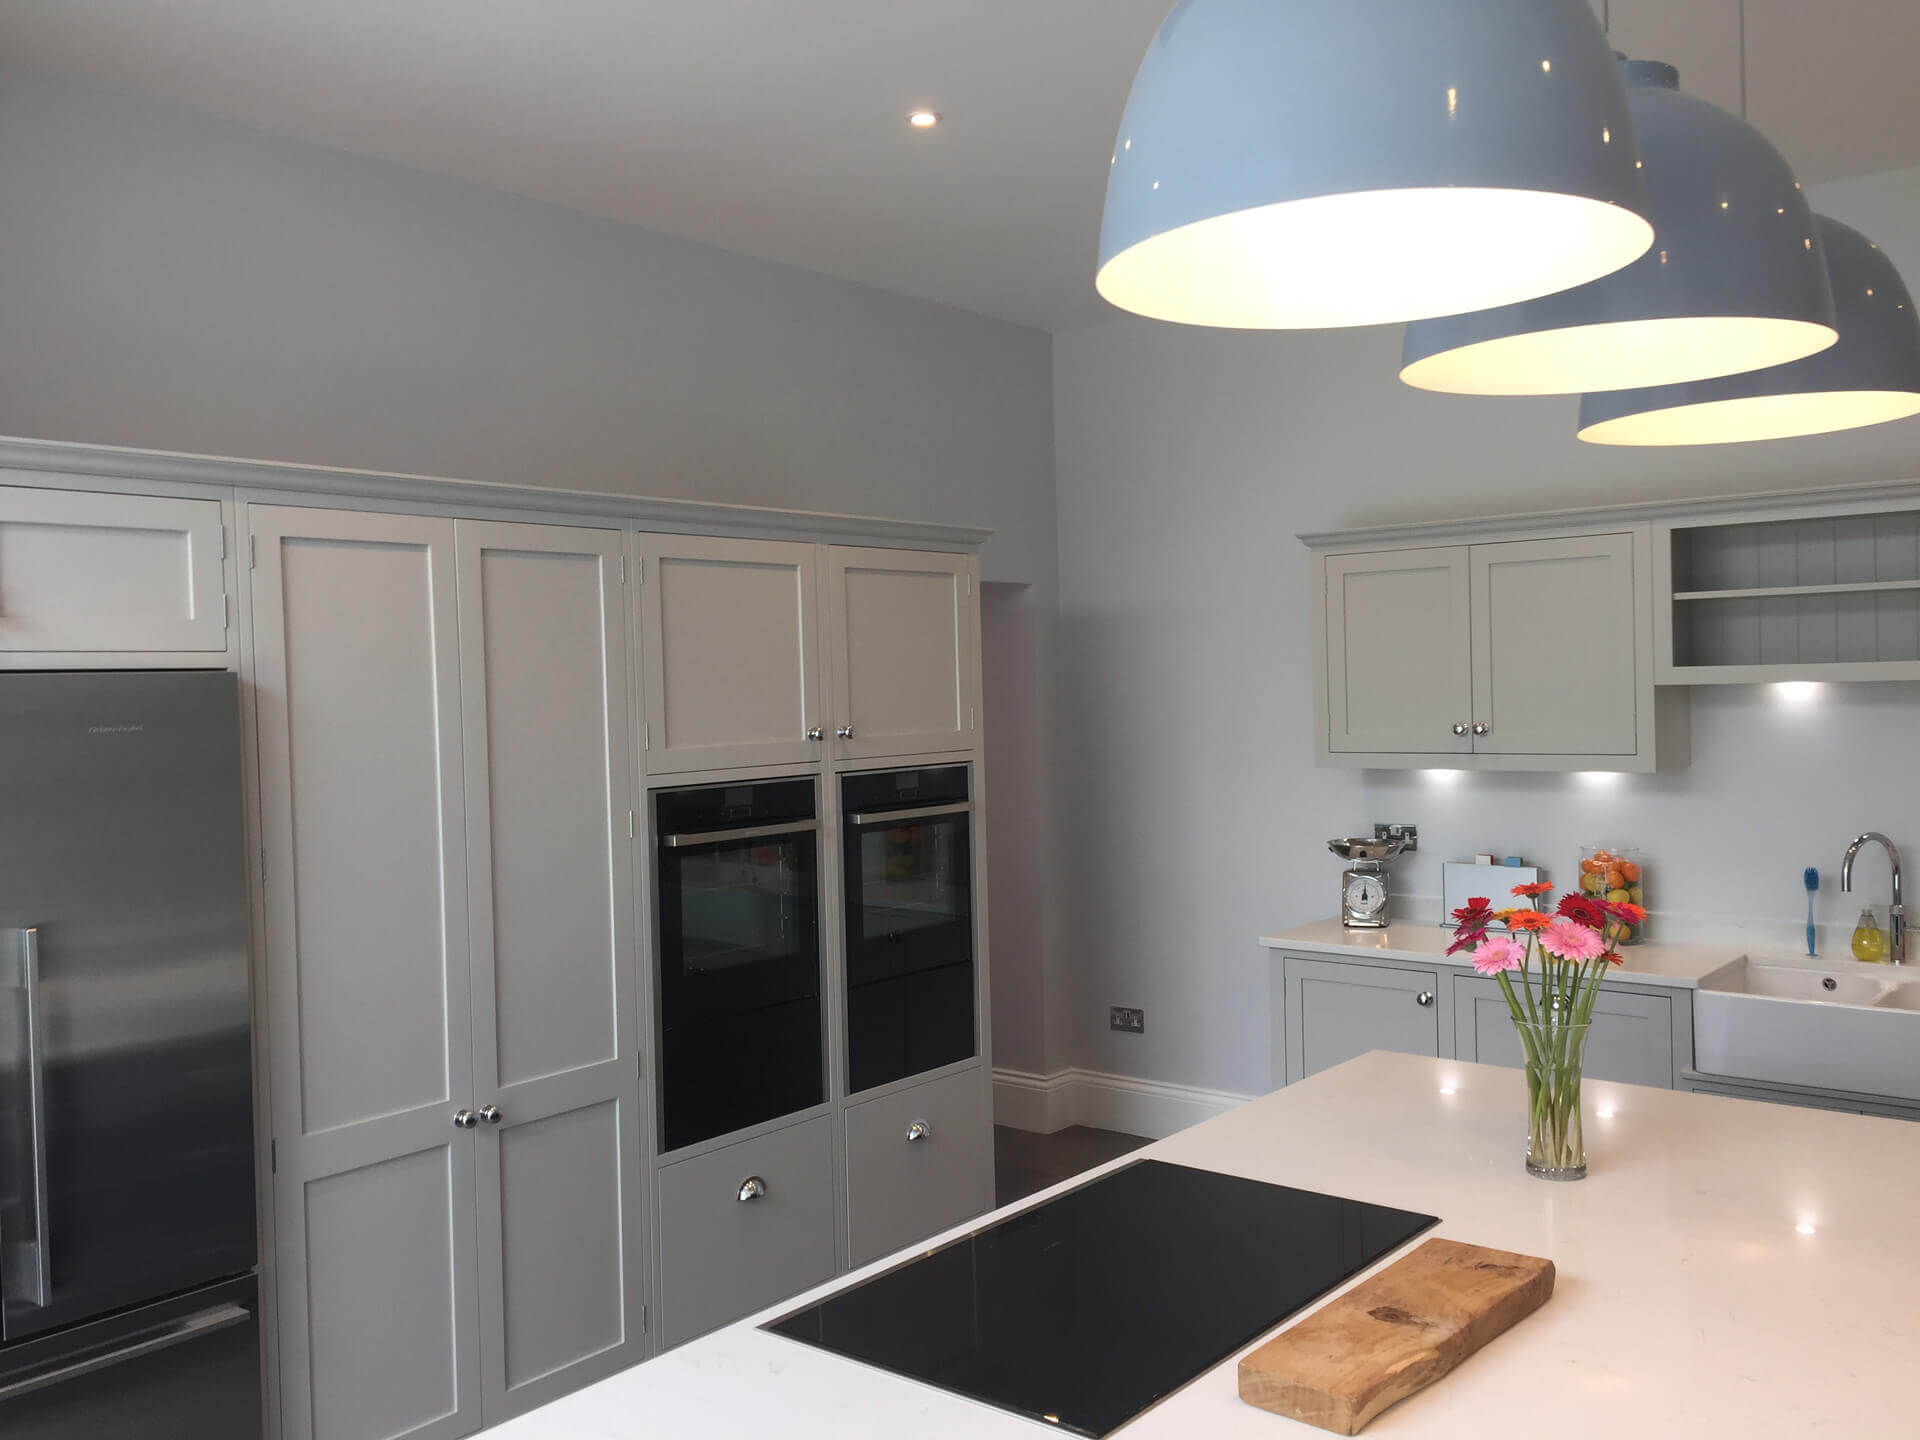 Bespoke Shaker Kitchen - Edgbaston